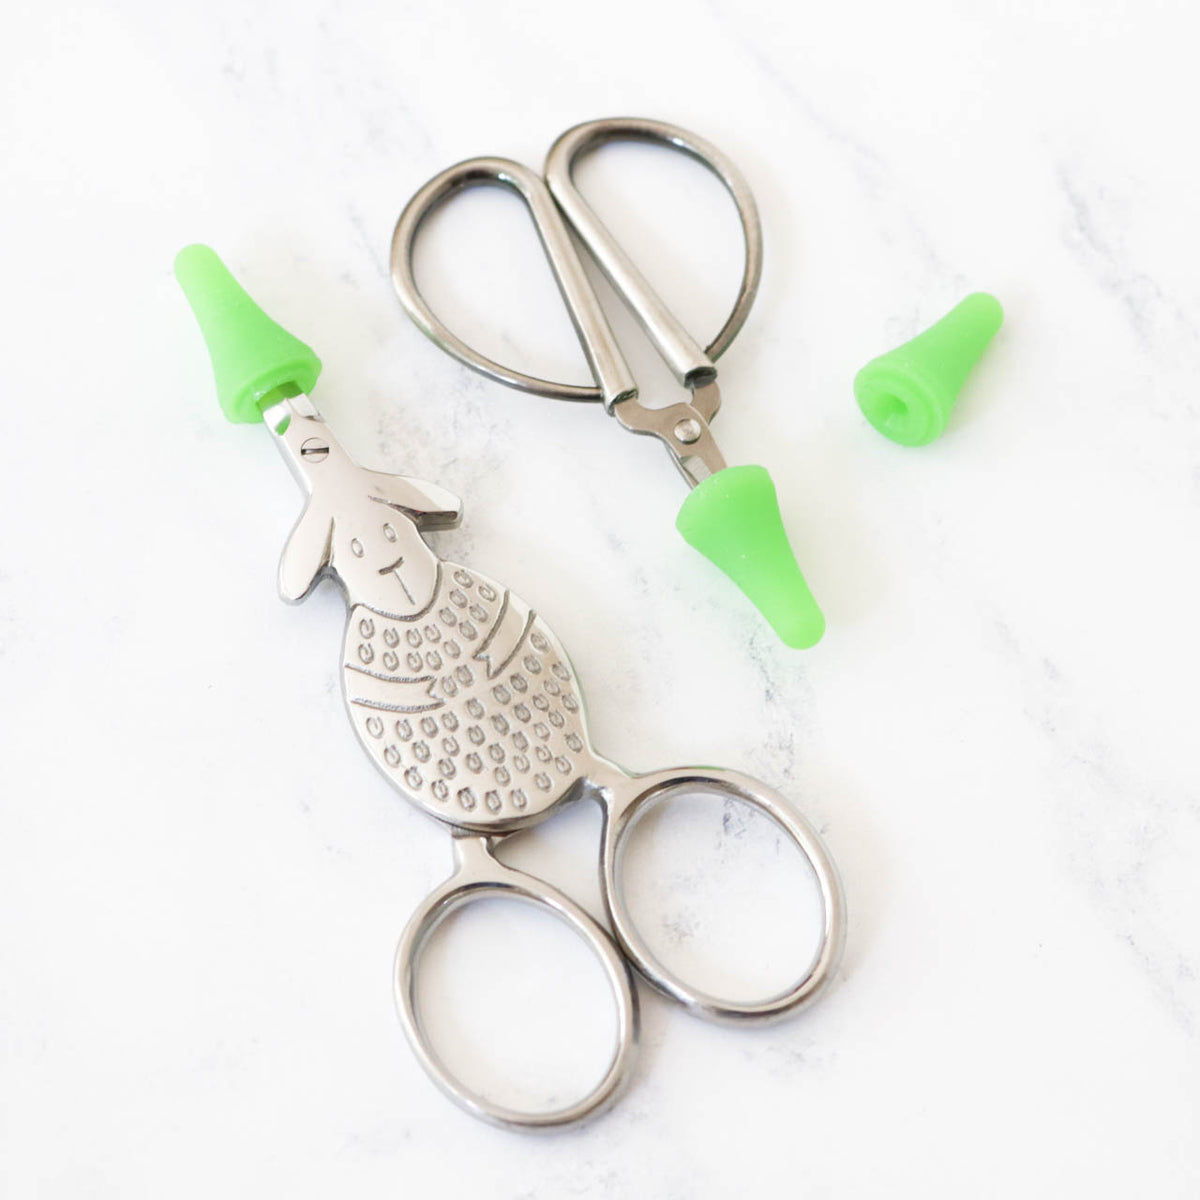 Embroidery Scissors Point Protectors